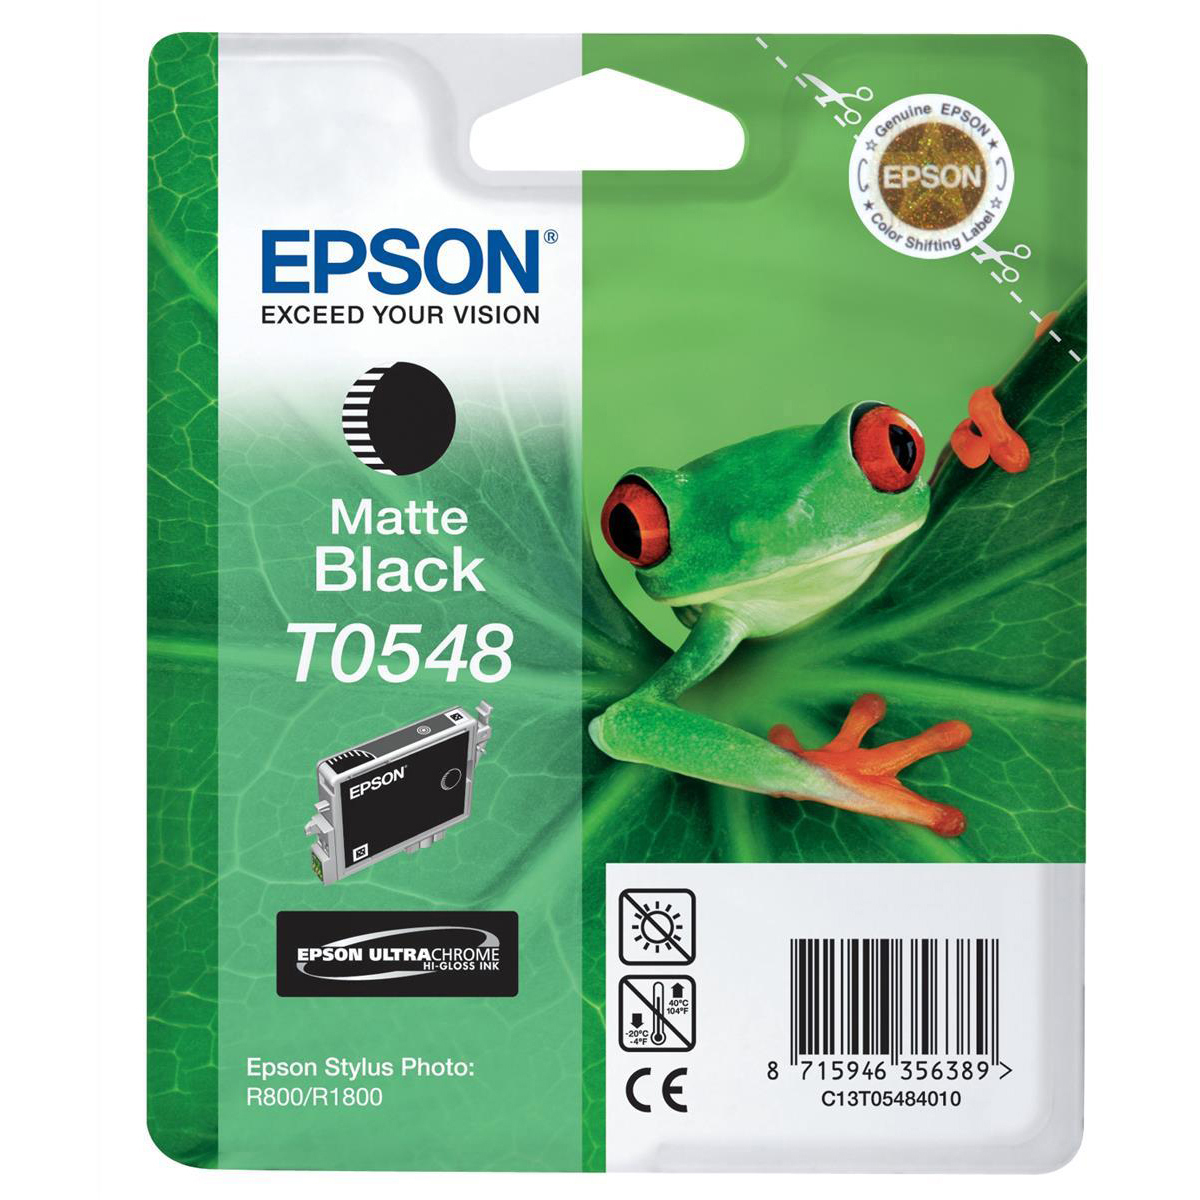 Original Epson T0548 Matte Black Ink Cartridge (C13T05484010)